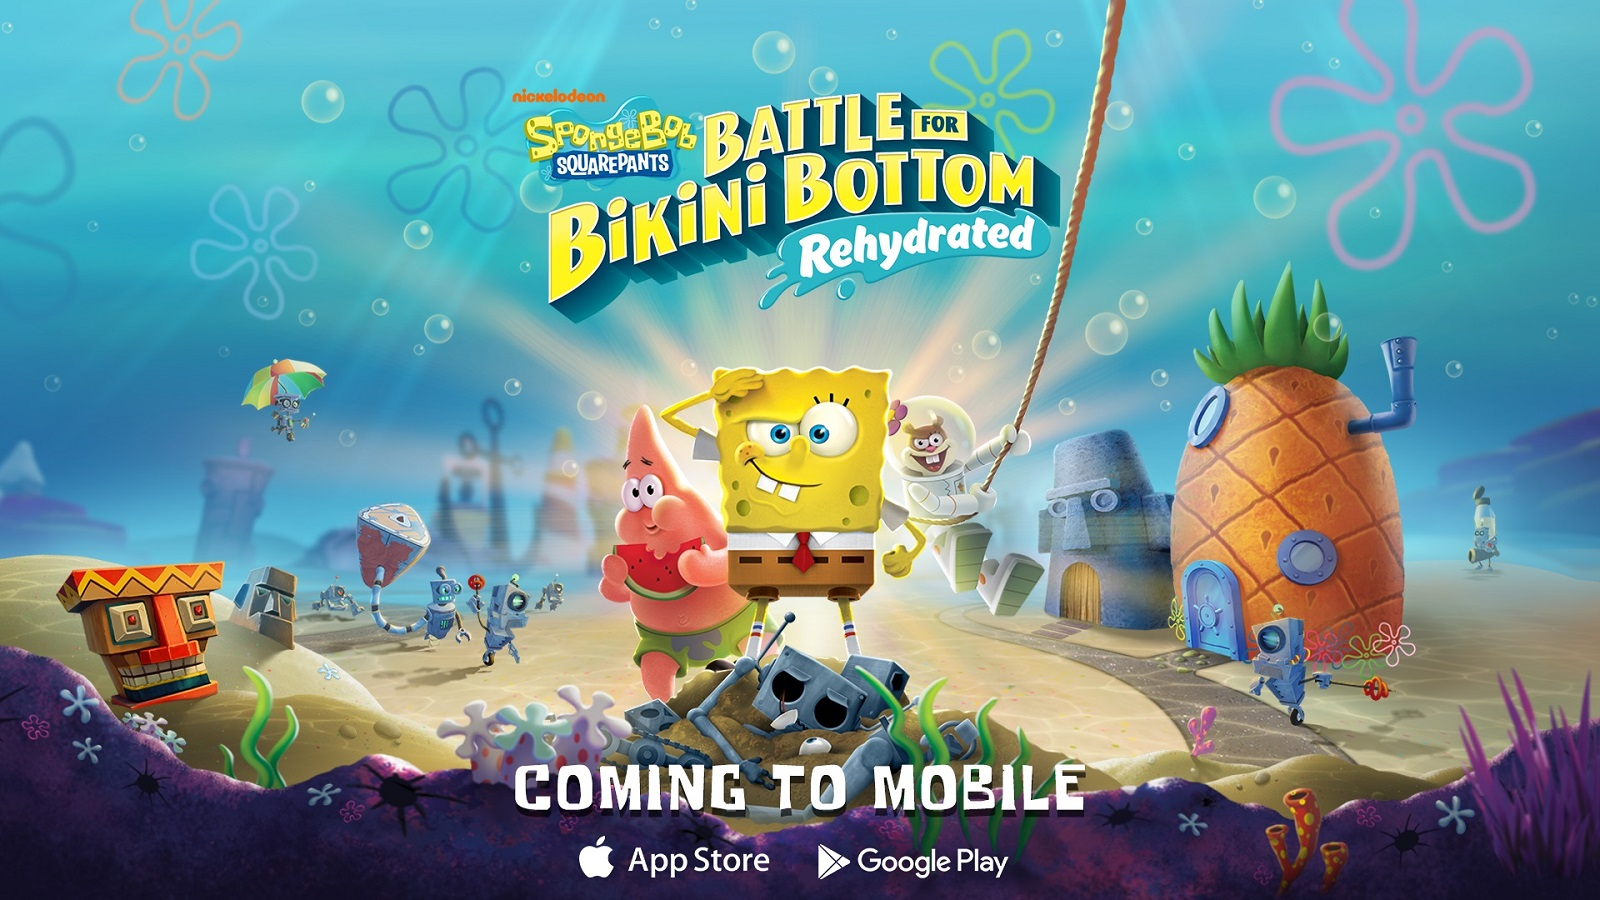 Ремастер SpongeBob SquarePants: Battle for Bikini Bottom выйдет на iOS и Android до конца января